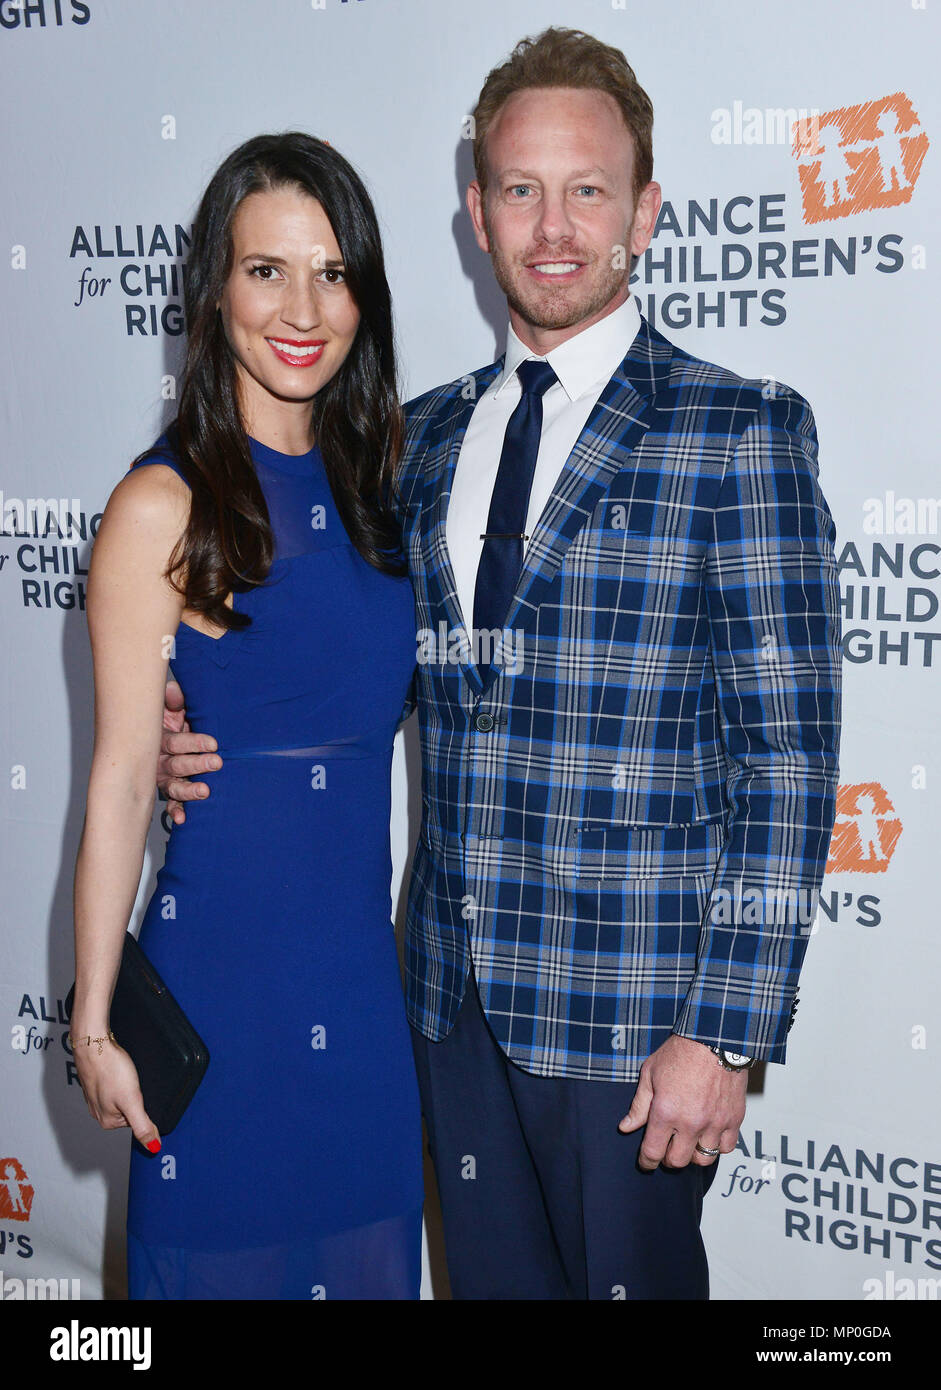 Ian Ziering, Erin Kristine Ludwig 011 arriving The Alliance for ChildrenÕs RightsÕ 24th Annual Dinner at the Beverly Hilton Hotel in Los Angeles. March 10, 2016.Ian Ziering, Erin Kristine Ludwig 011 ------------- Red Carpet Event, Vertical, USA, Film Industry, Celebrities,  Photography, Bestof, Arts Culture and Entertainment, Topix Celebrities fashion /  Vertical, Best of, Event in Hollywood Life - California,  Red Carpet and backstage, USA, Film Industry, Celebrities,  movie celebrities, TV celebrities, Music celebrities, Photography, Bestof, Arts Culture and Entertainment,  Topix, vertical,  - Stock Image